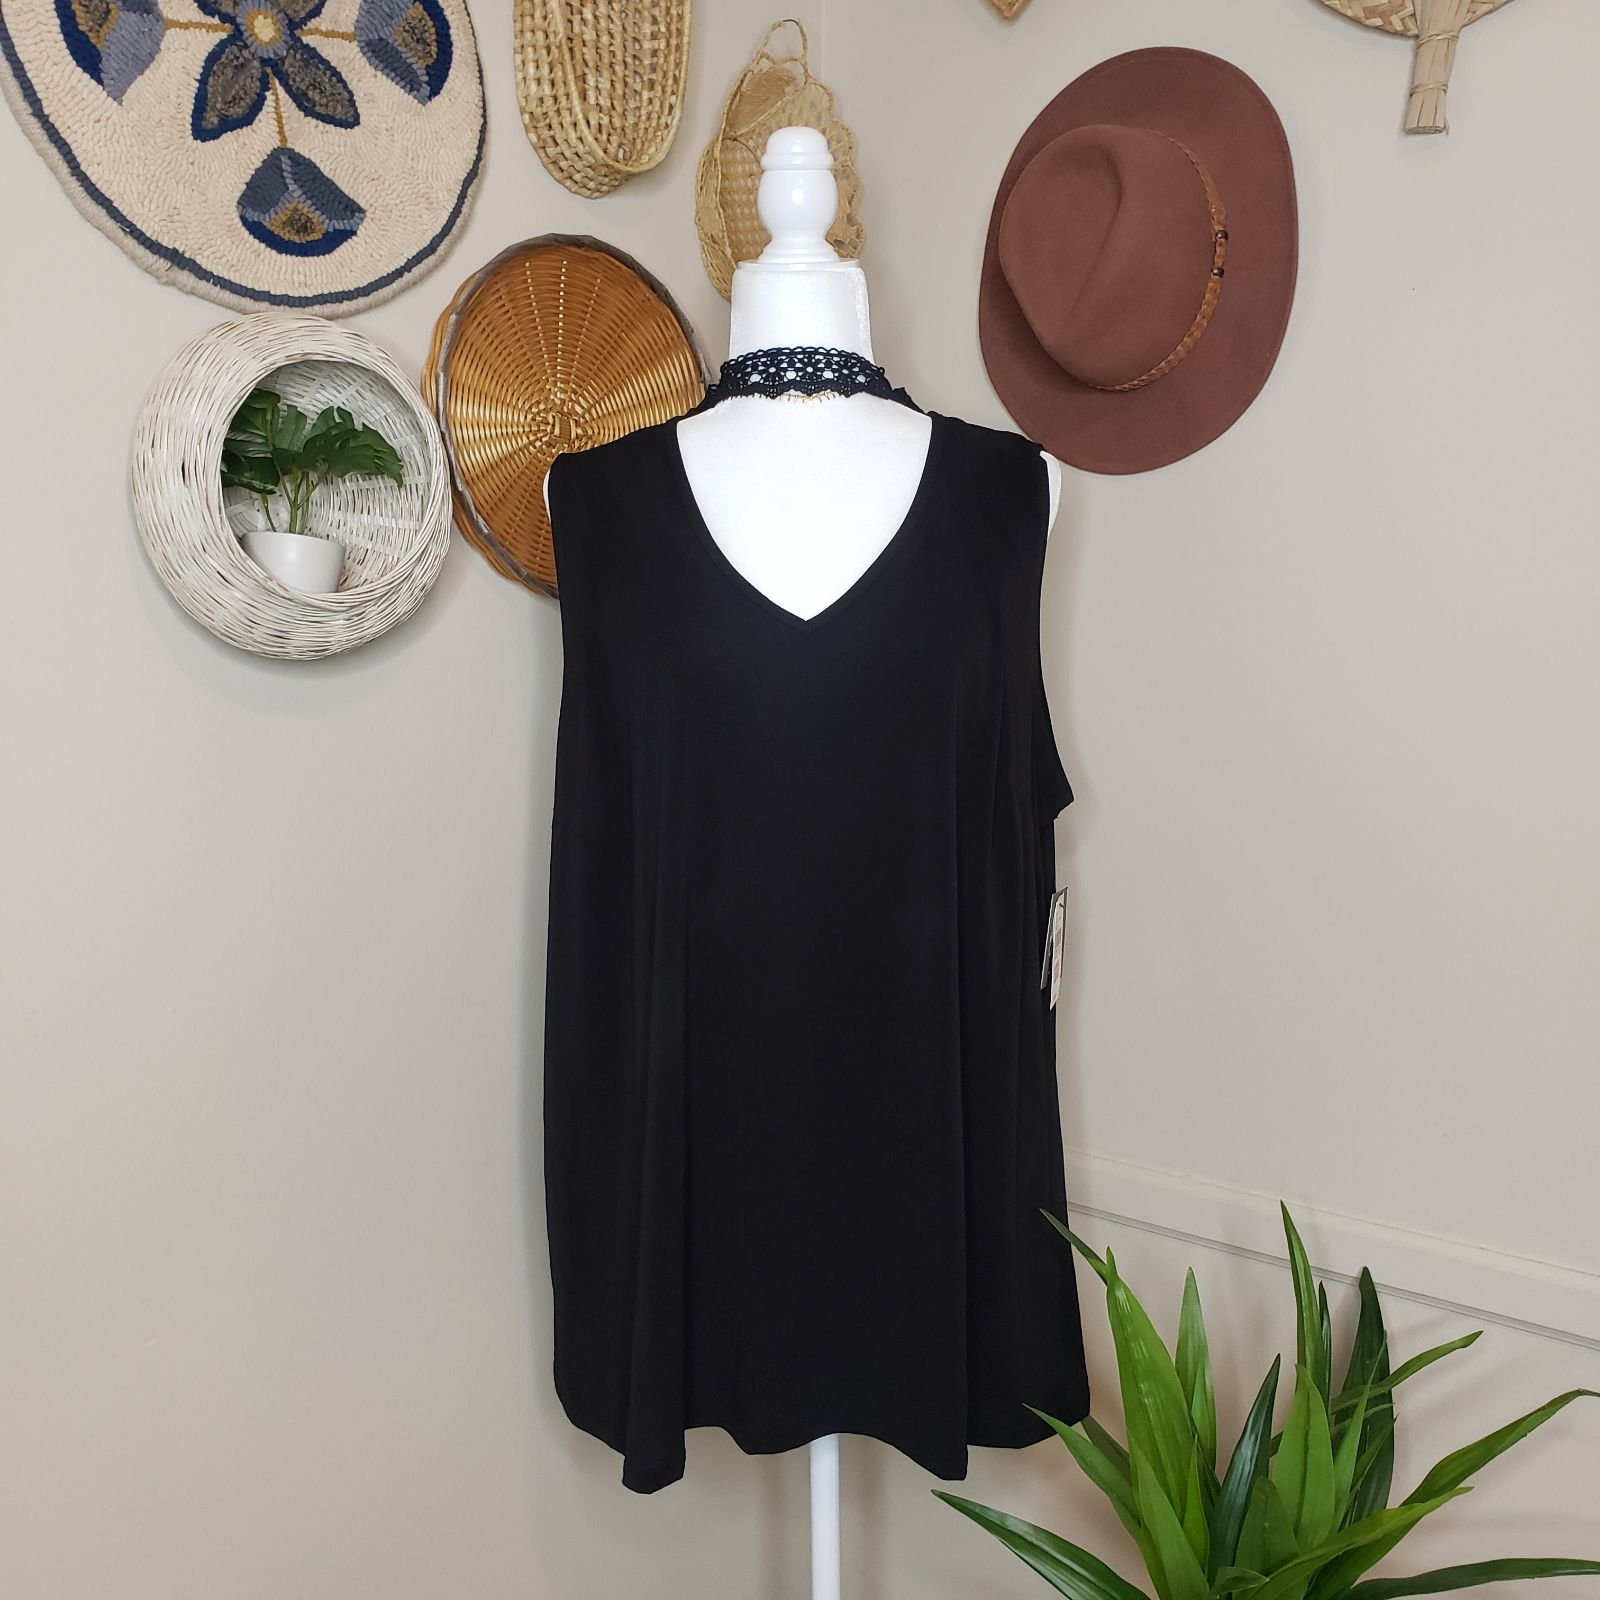 by&by Sleeveless Tank with Lace Choker